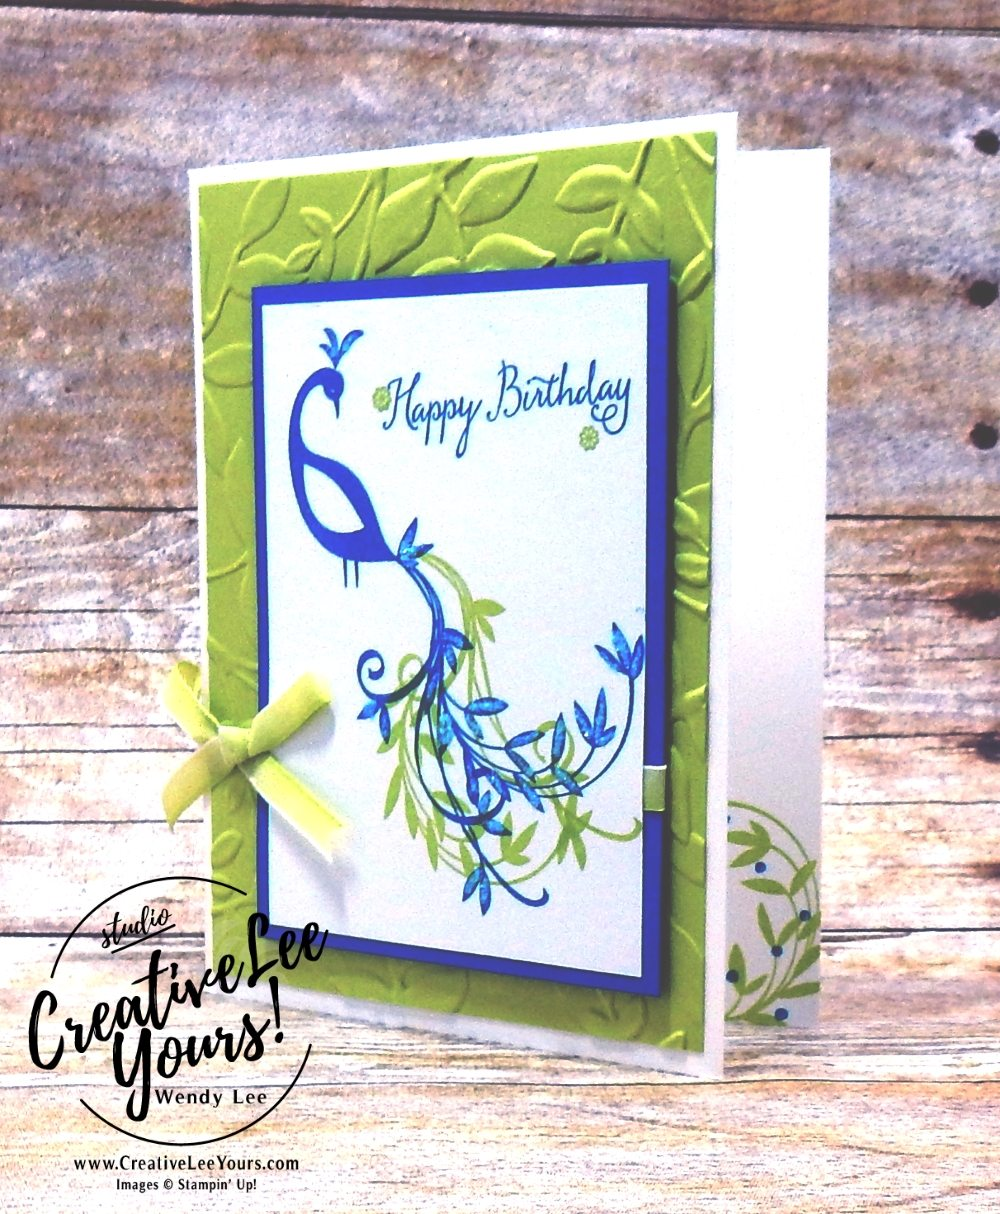 Birthday Peacock by Jennifer Hamlin,wendy lee, stampin up, stamping, beautiful peacock stamp set, SAB,Sale-a-bration,handmade,SU,#creativeleeyours, creatively yours,creative-lee yours, SU cards,diemonds team swap